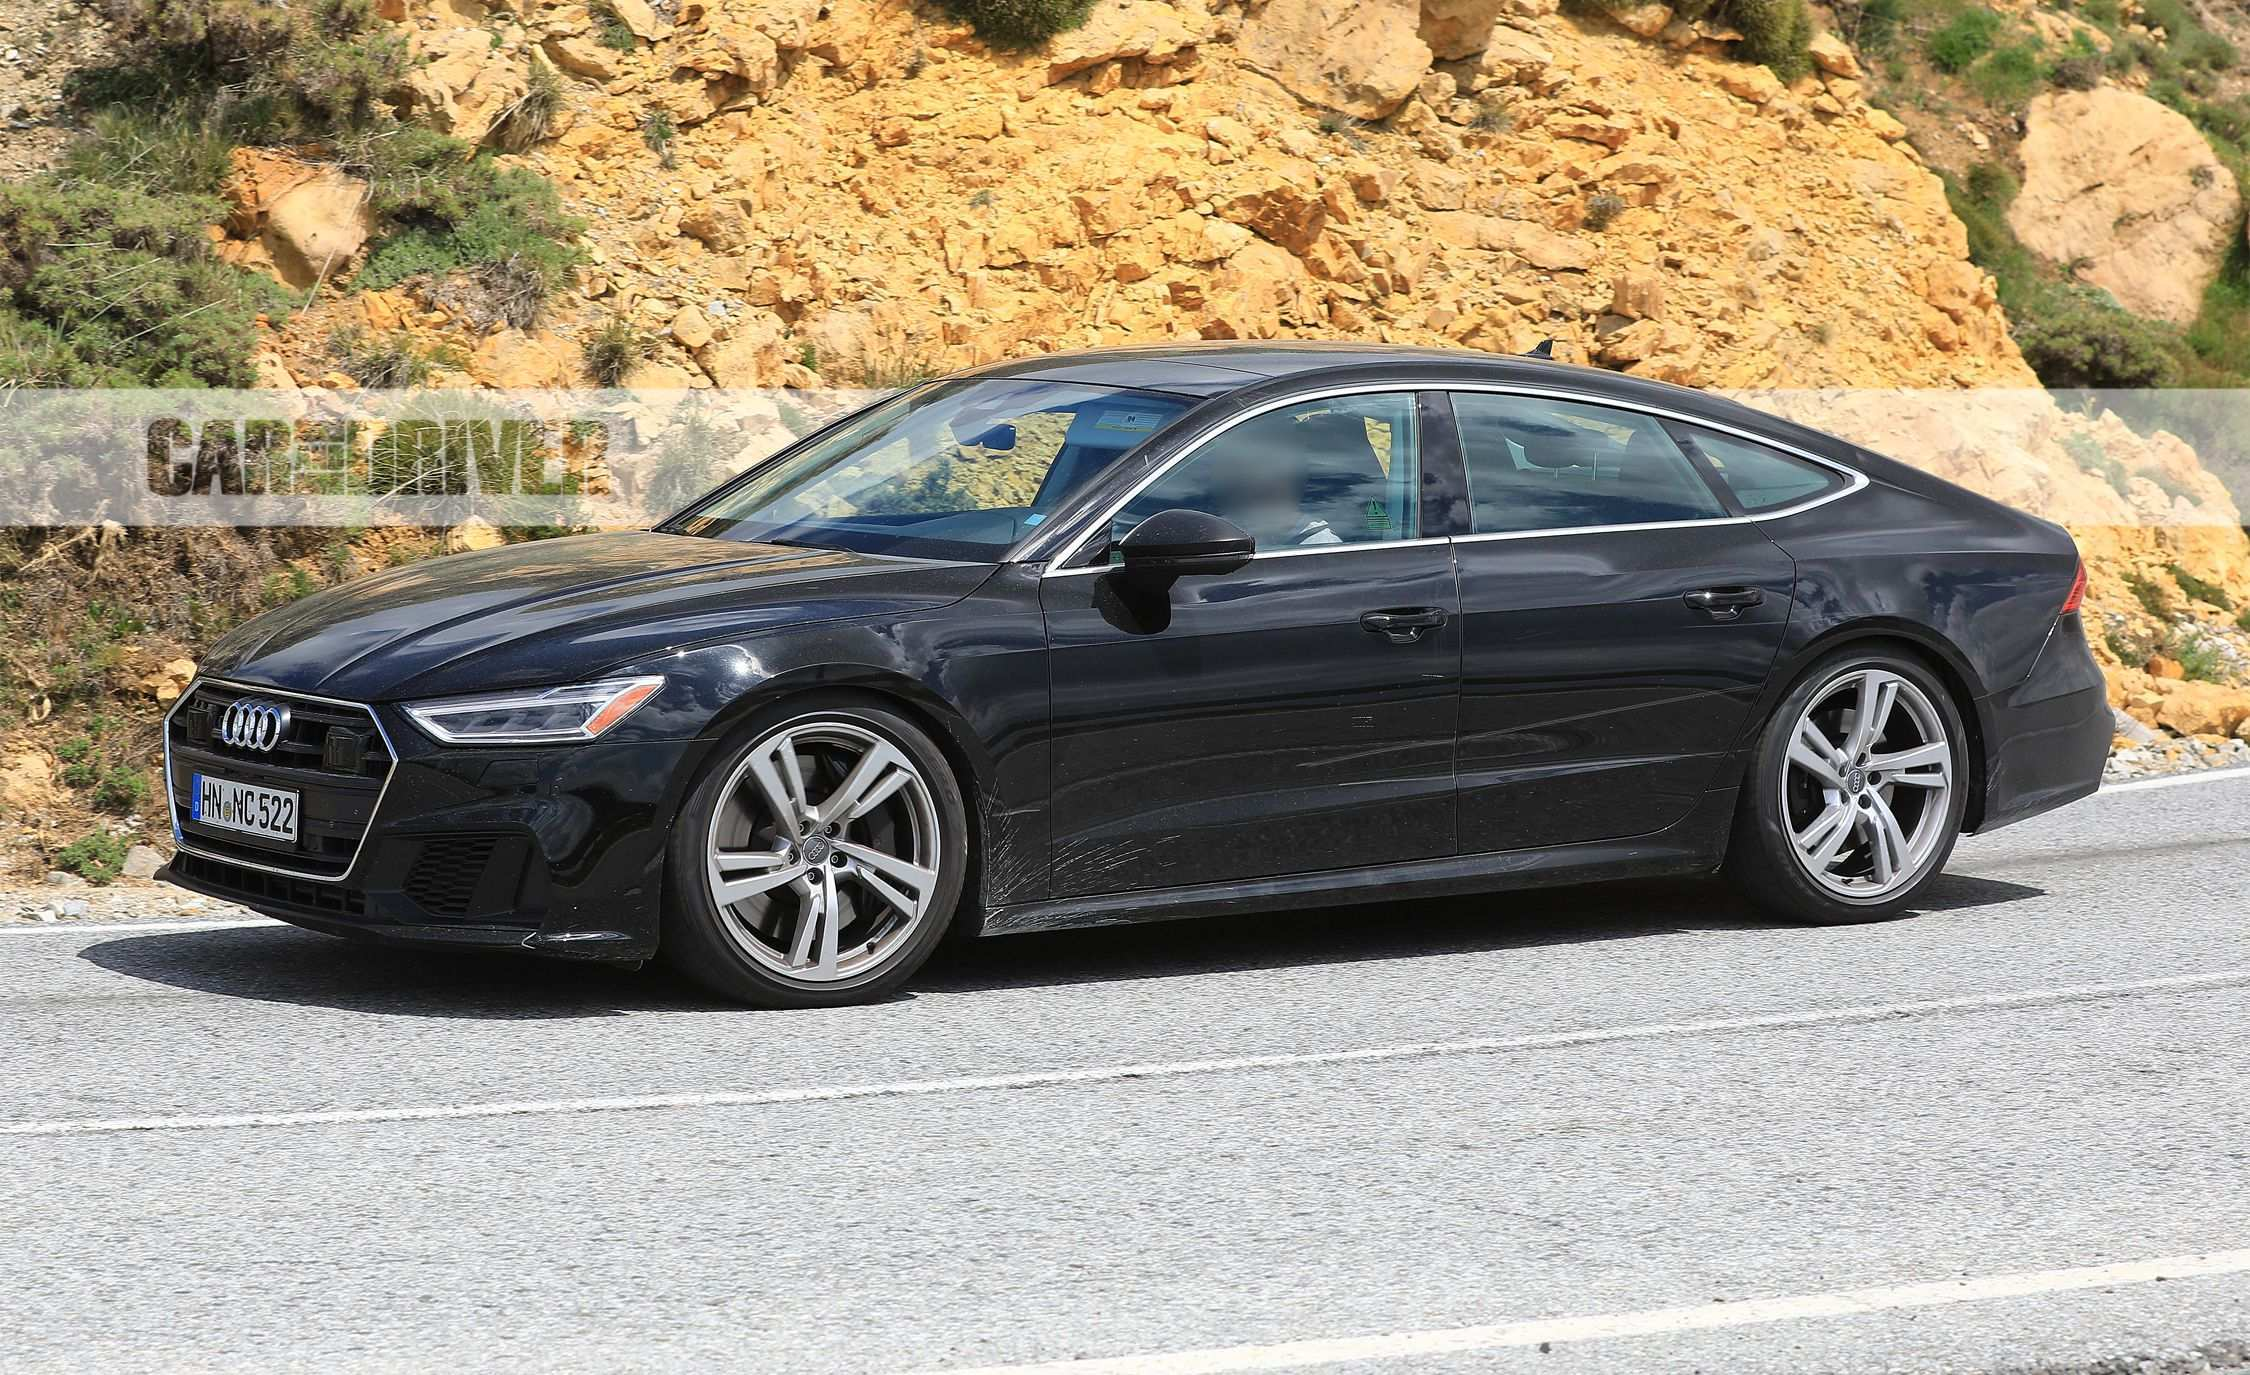 98 Great 2020 All Audi A7 Research New by 2020 All Audi A7